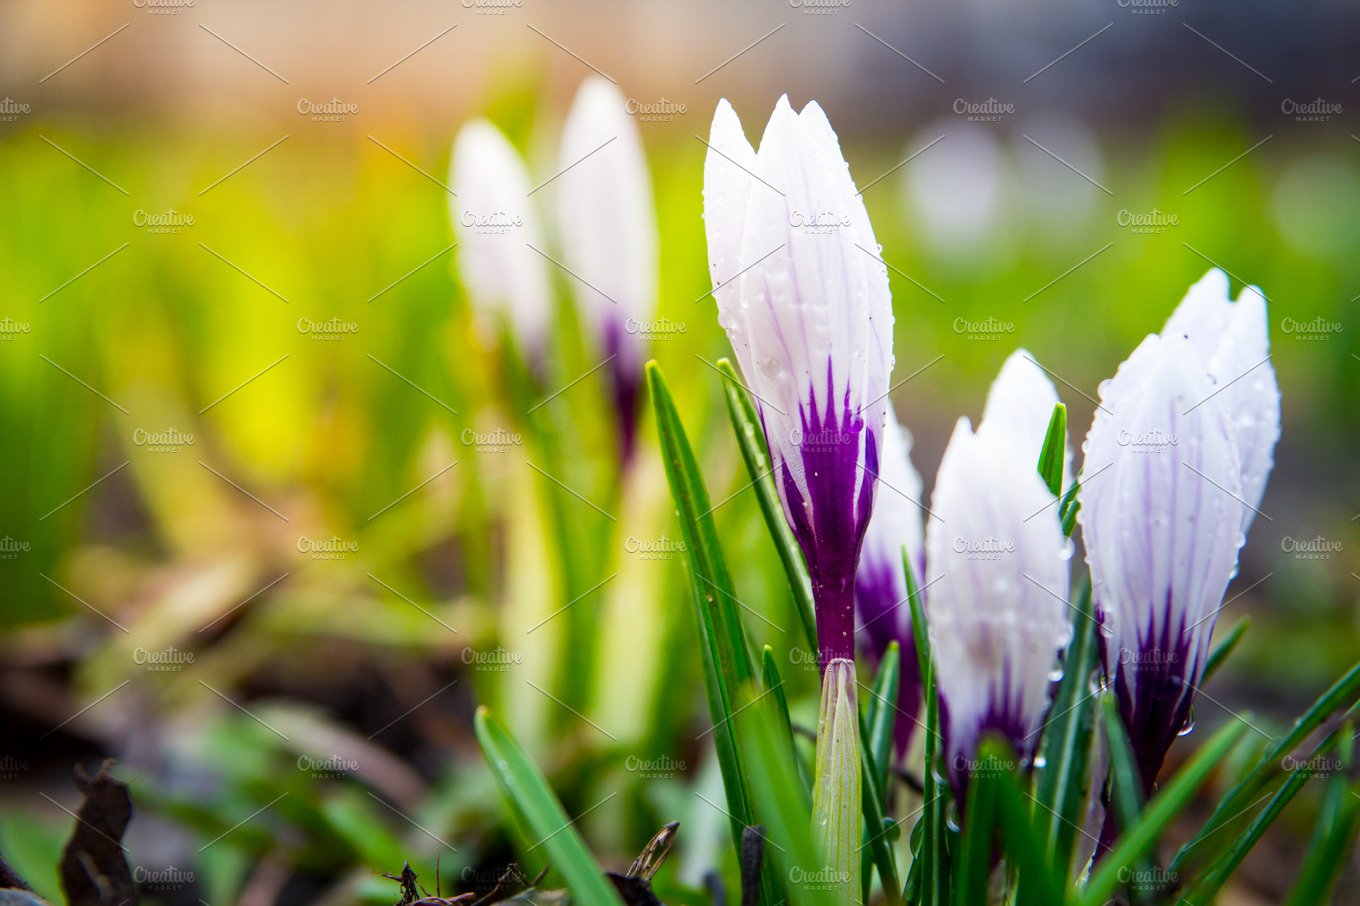 White Crocus Spring Flowers In The Forest Growing From The Ground